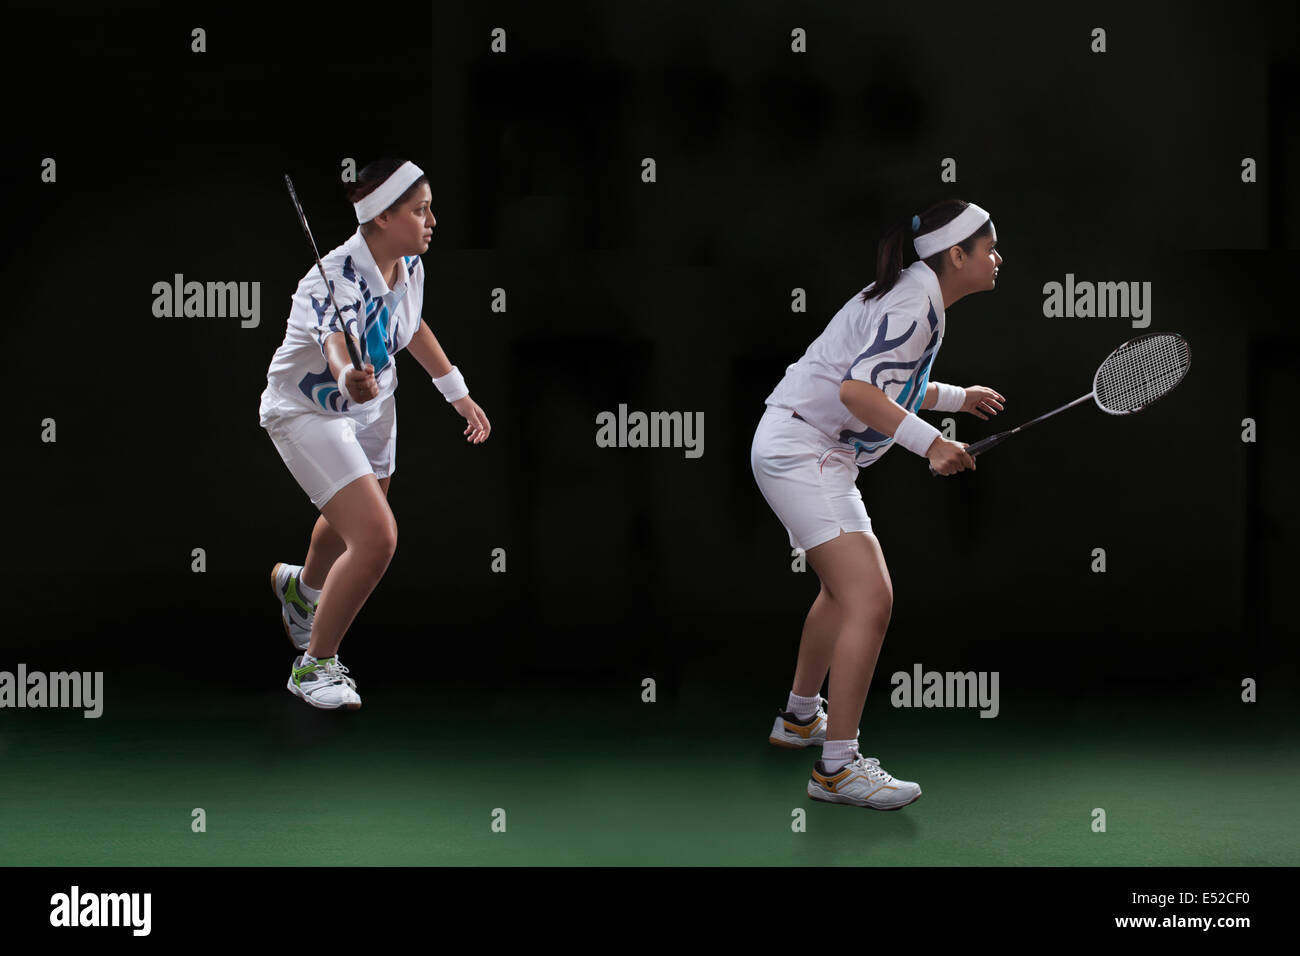 Profile shot of female players playing doubles badminton over black background - Stock Image